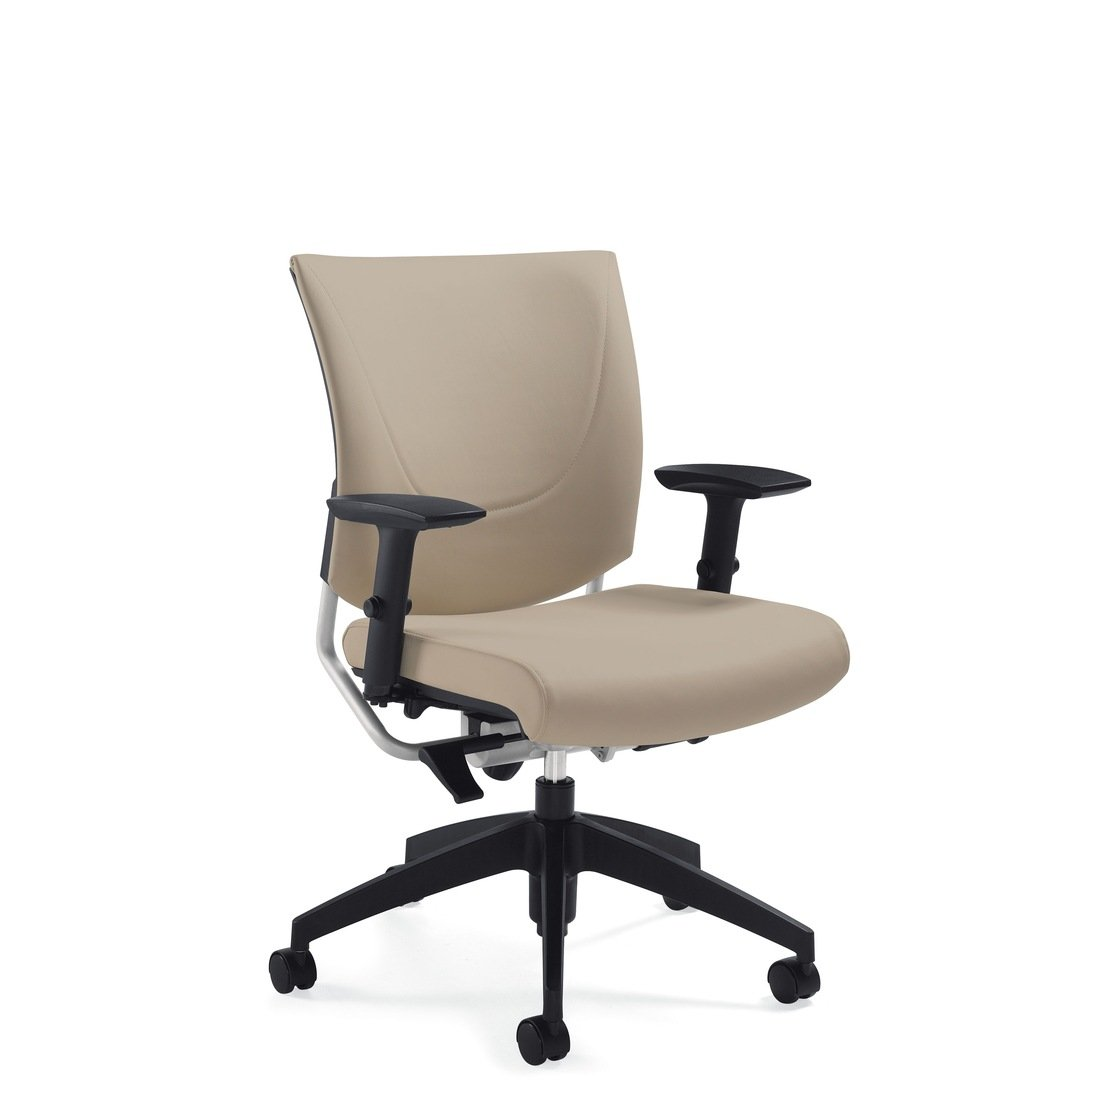 Graphic upholstered posture back chair, model 2739. This chair has been placed on a white background.